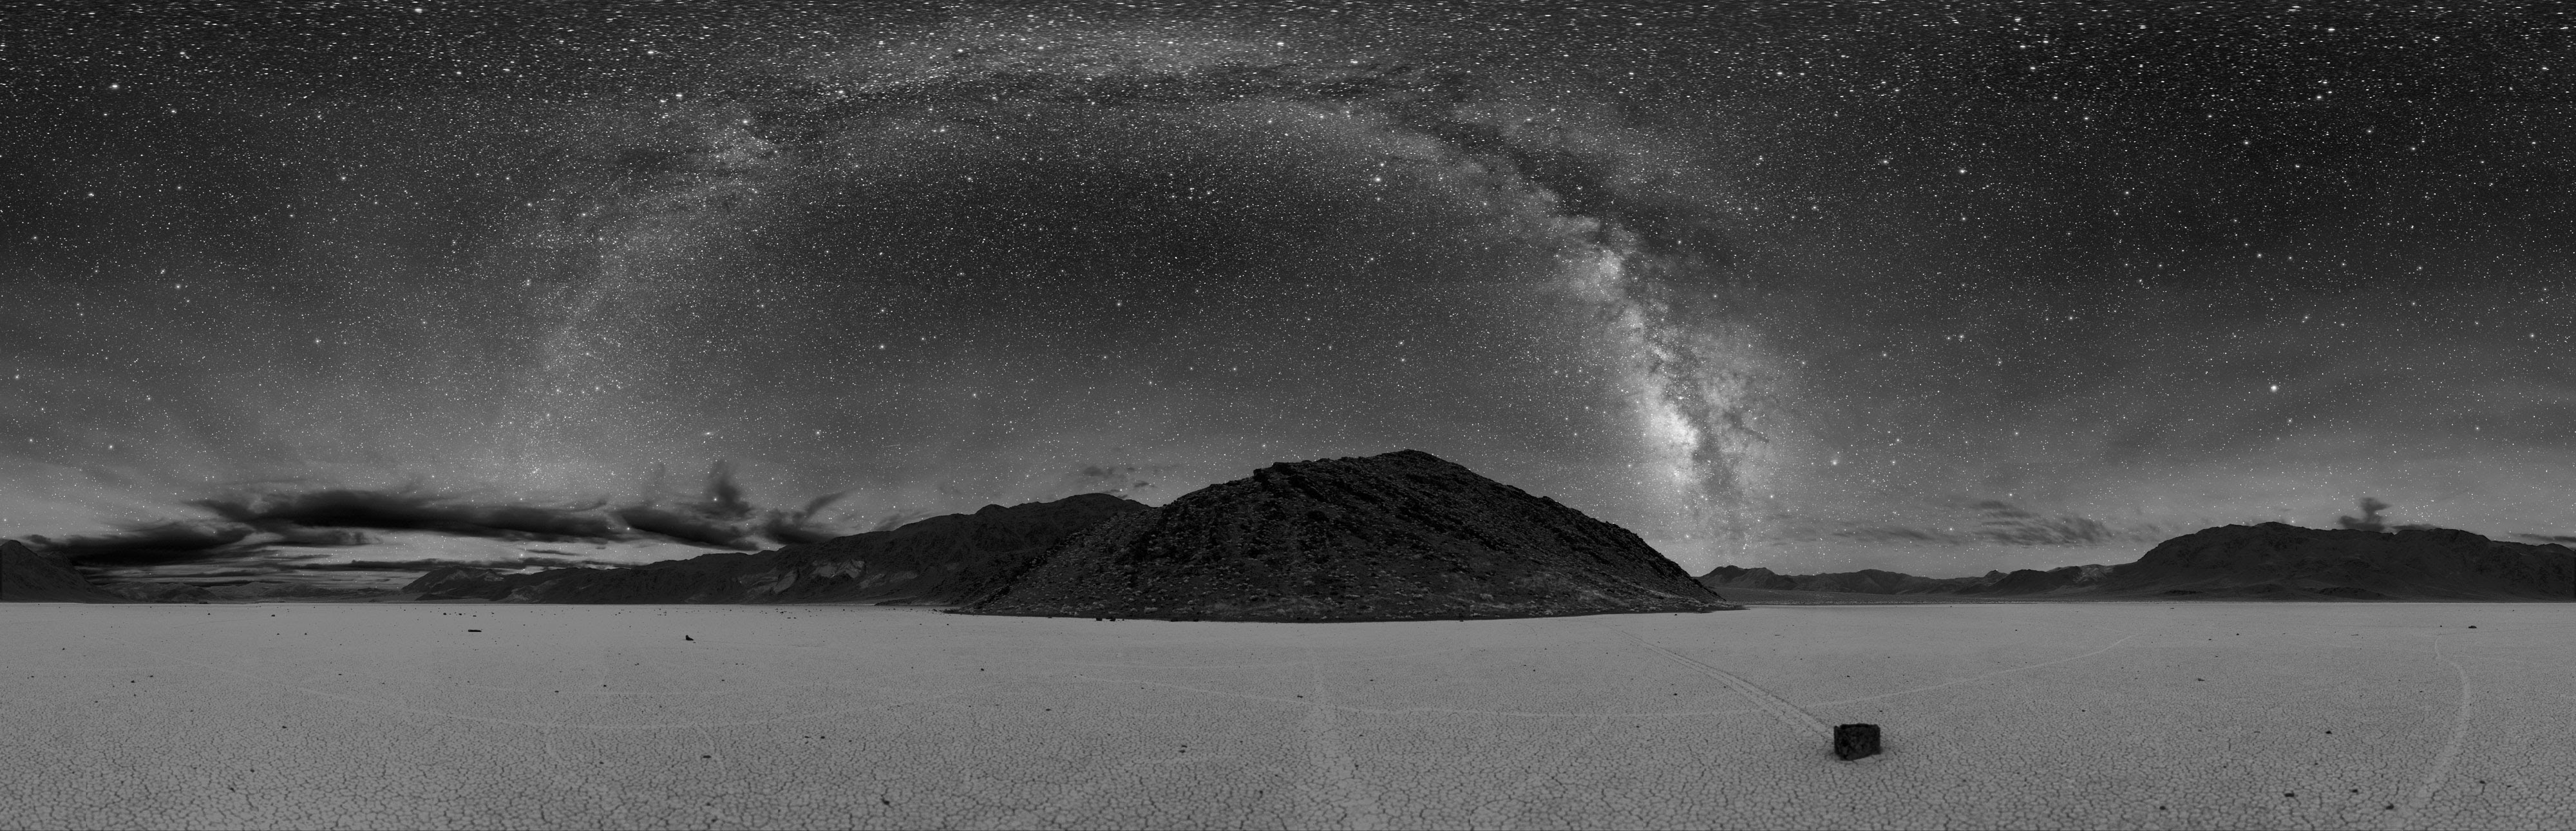 Racetrack Playa 1980